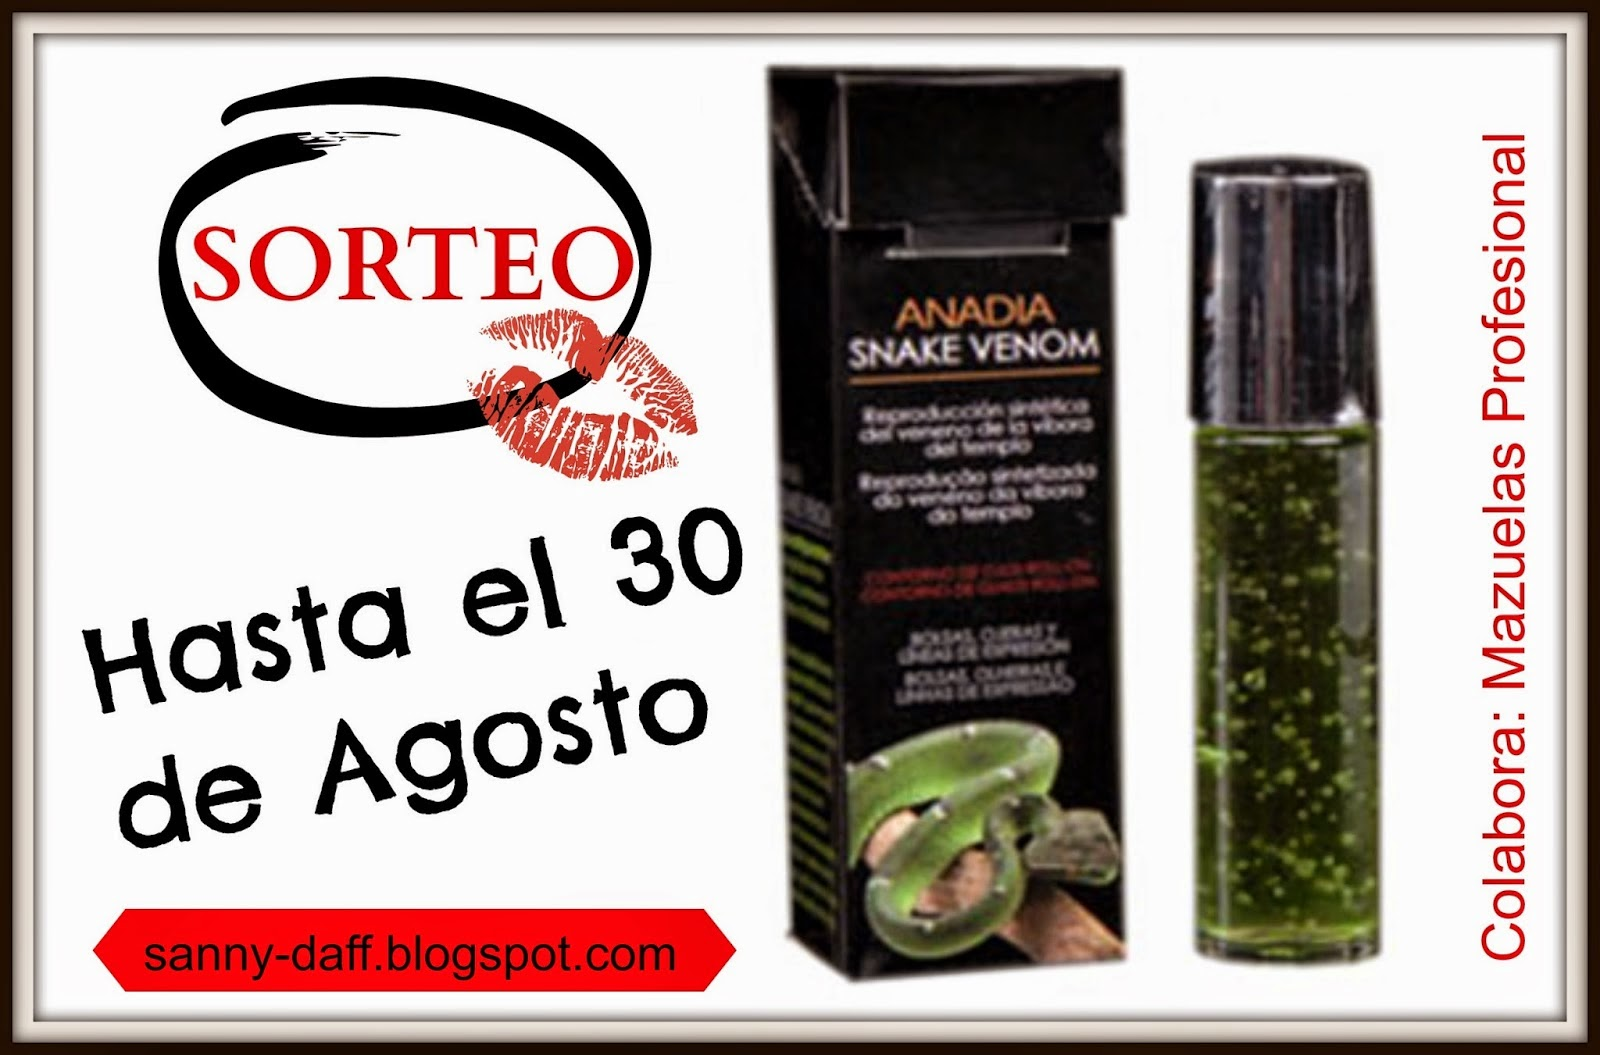 Sorteo en My sweet insanity